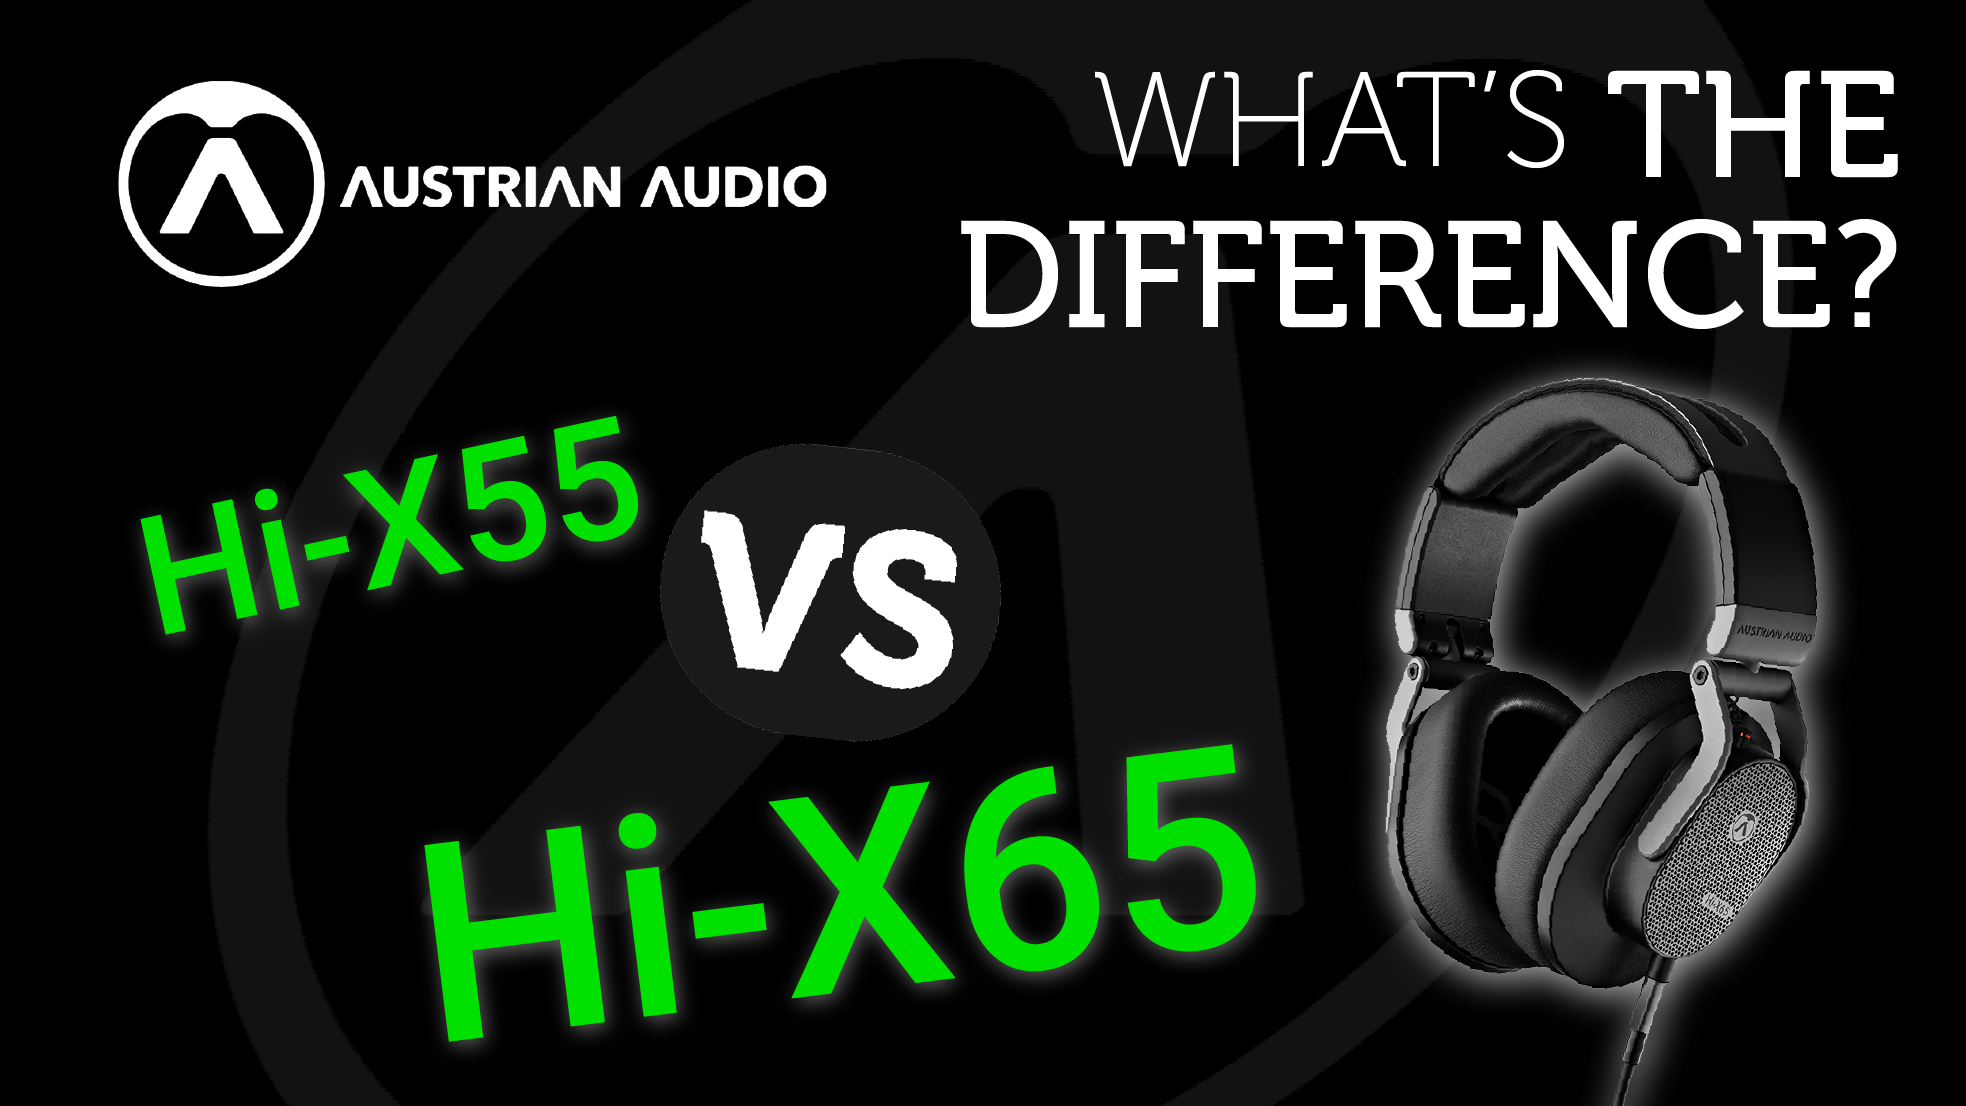 NEW Austrian Audio Hi-X65 vs. Hi-X55 - What's the Difference?